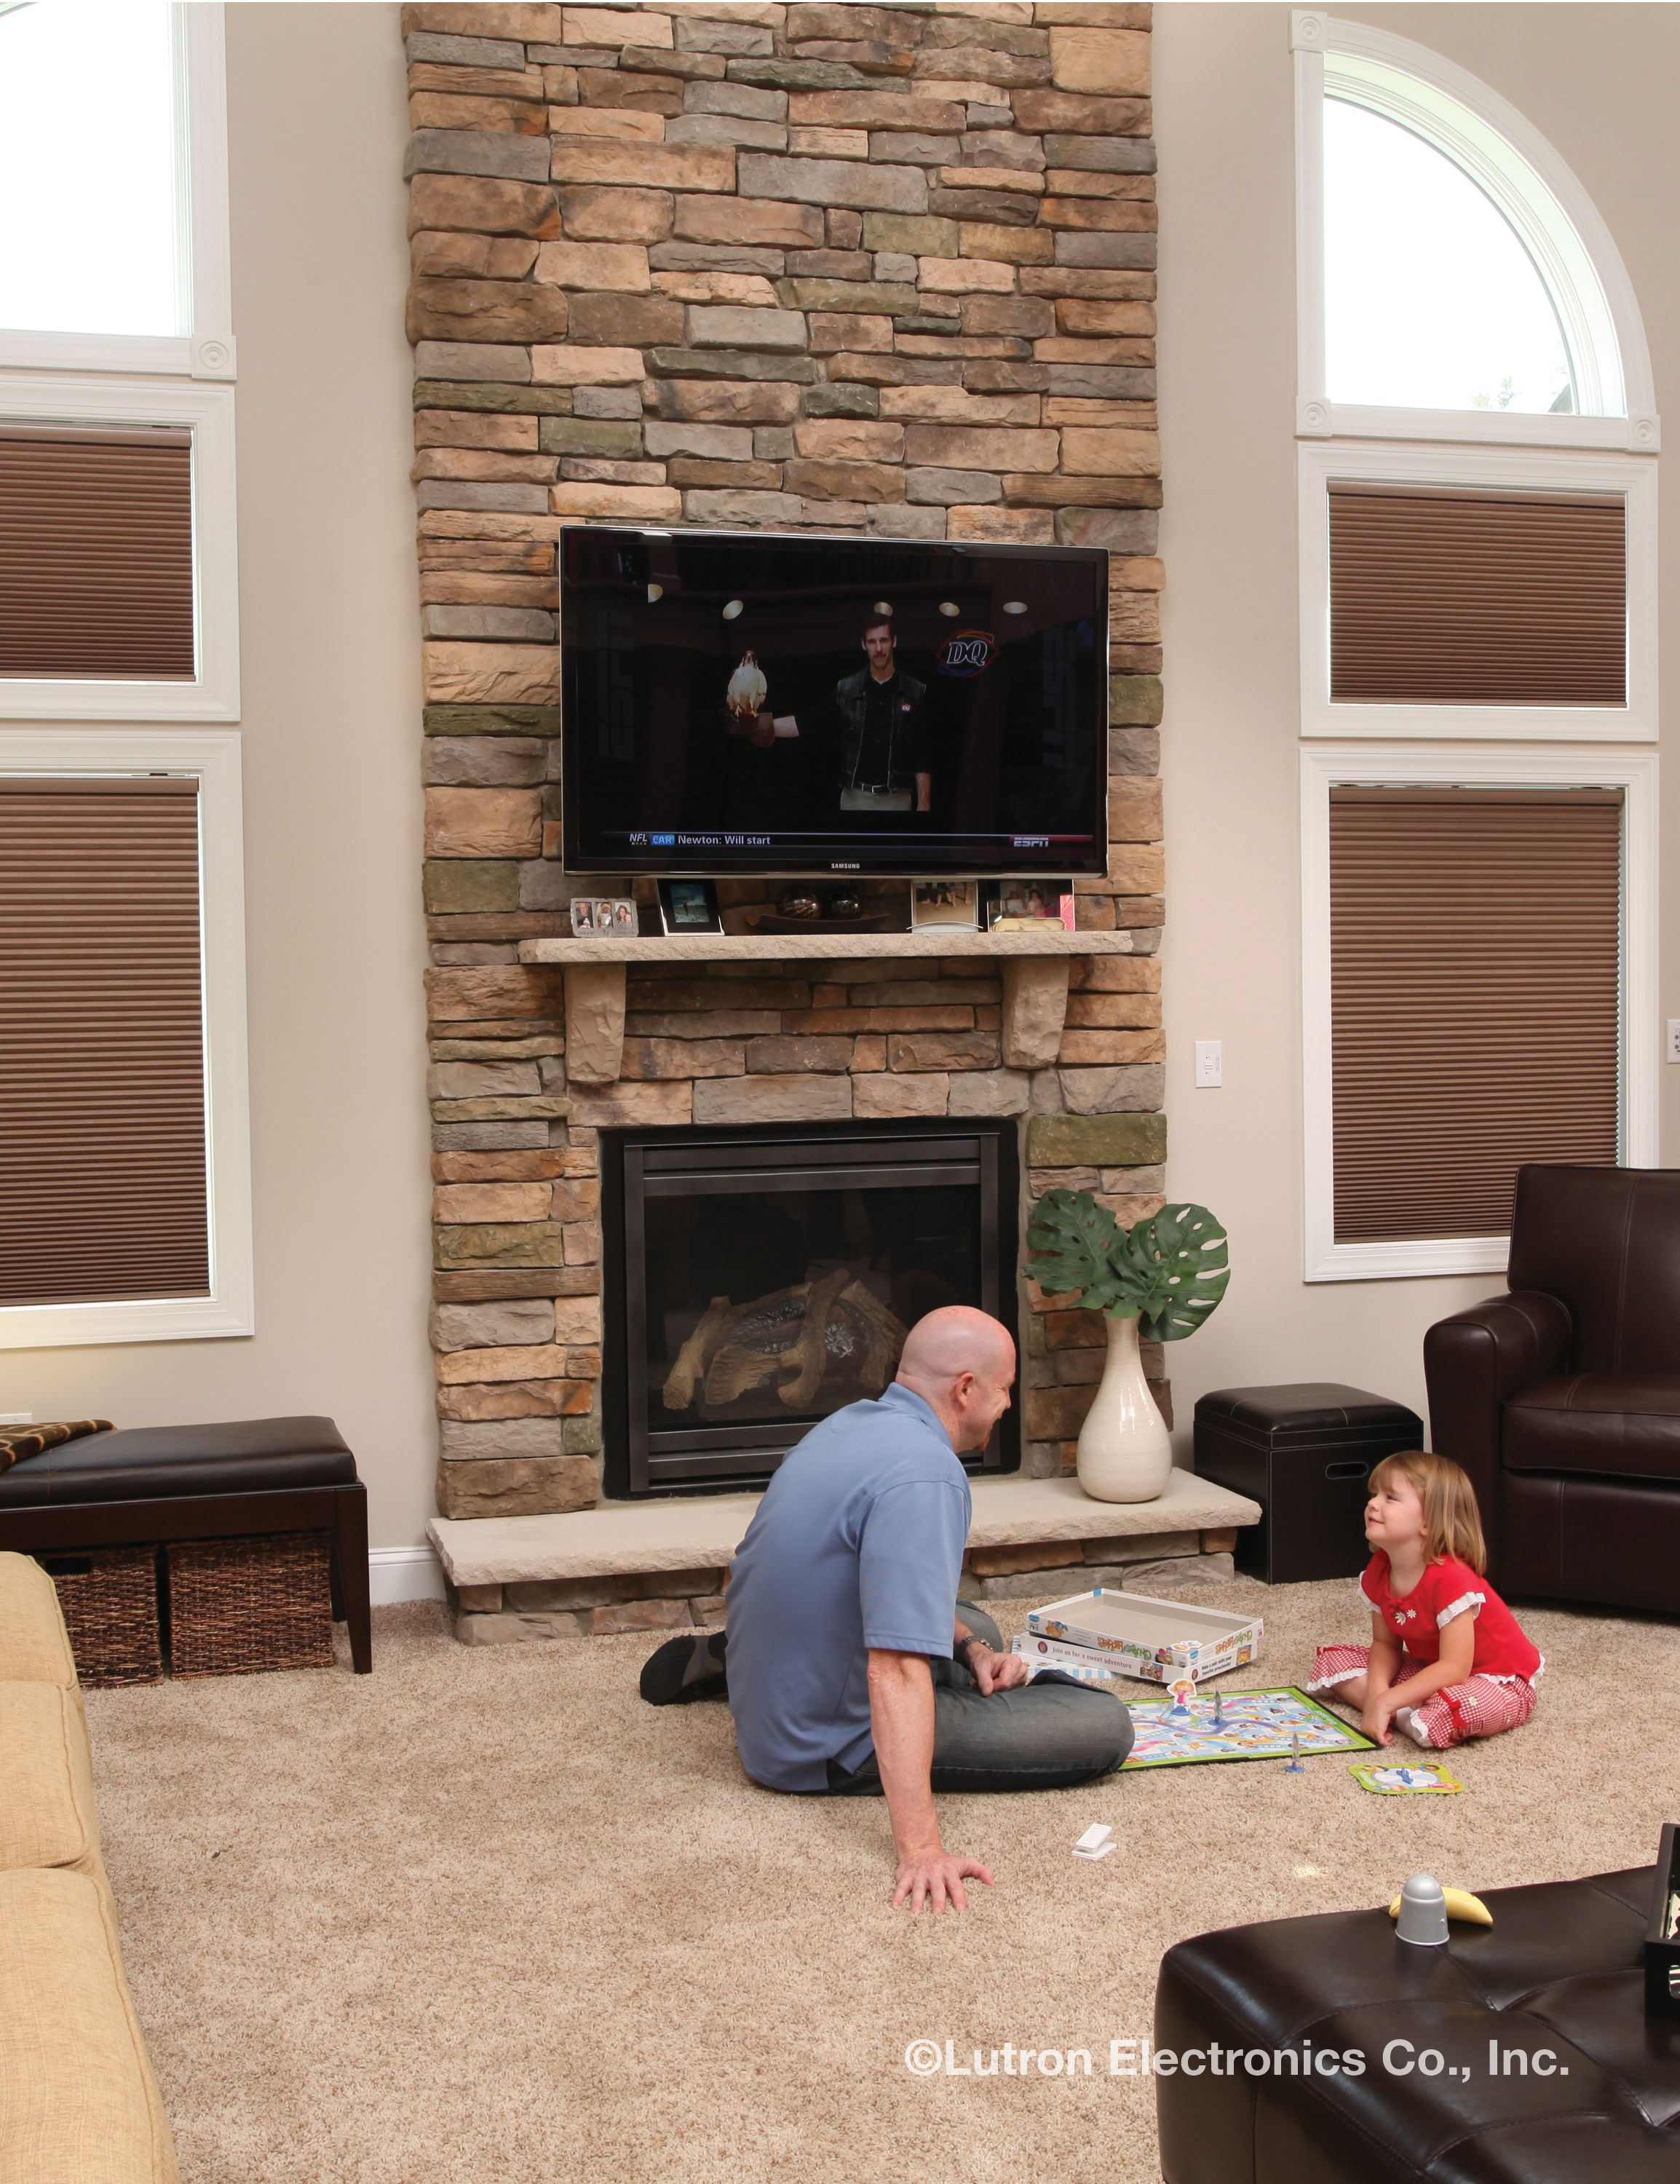 to depot regard blinds full in san diego roller ideas blind ca remote home shutters inspirational window idea shades best control of with size motorized windows controlled bedroom and